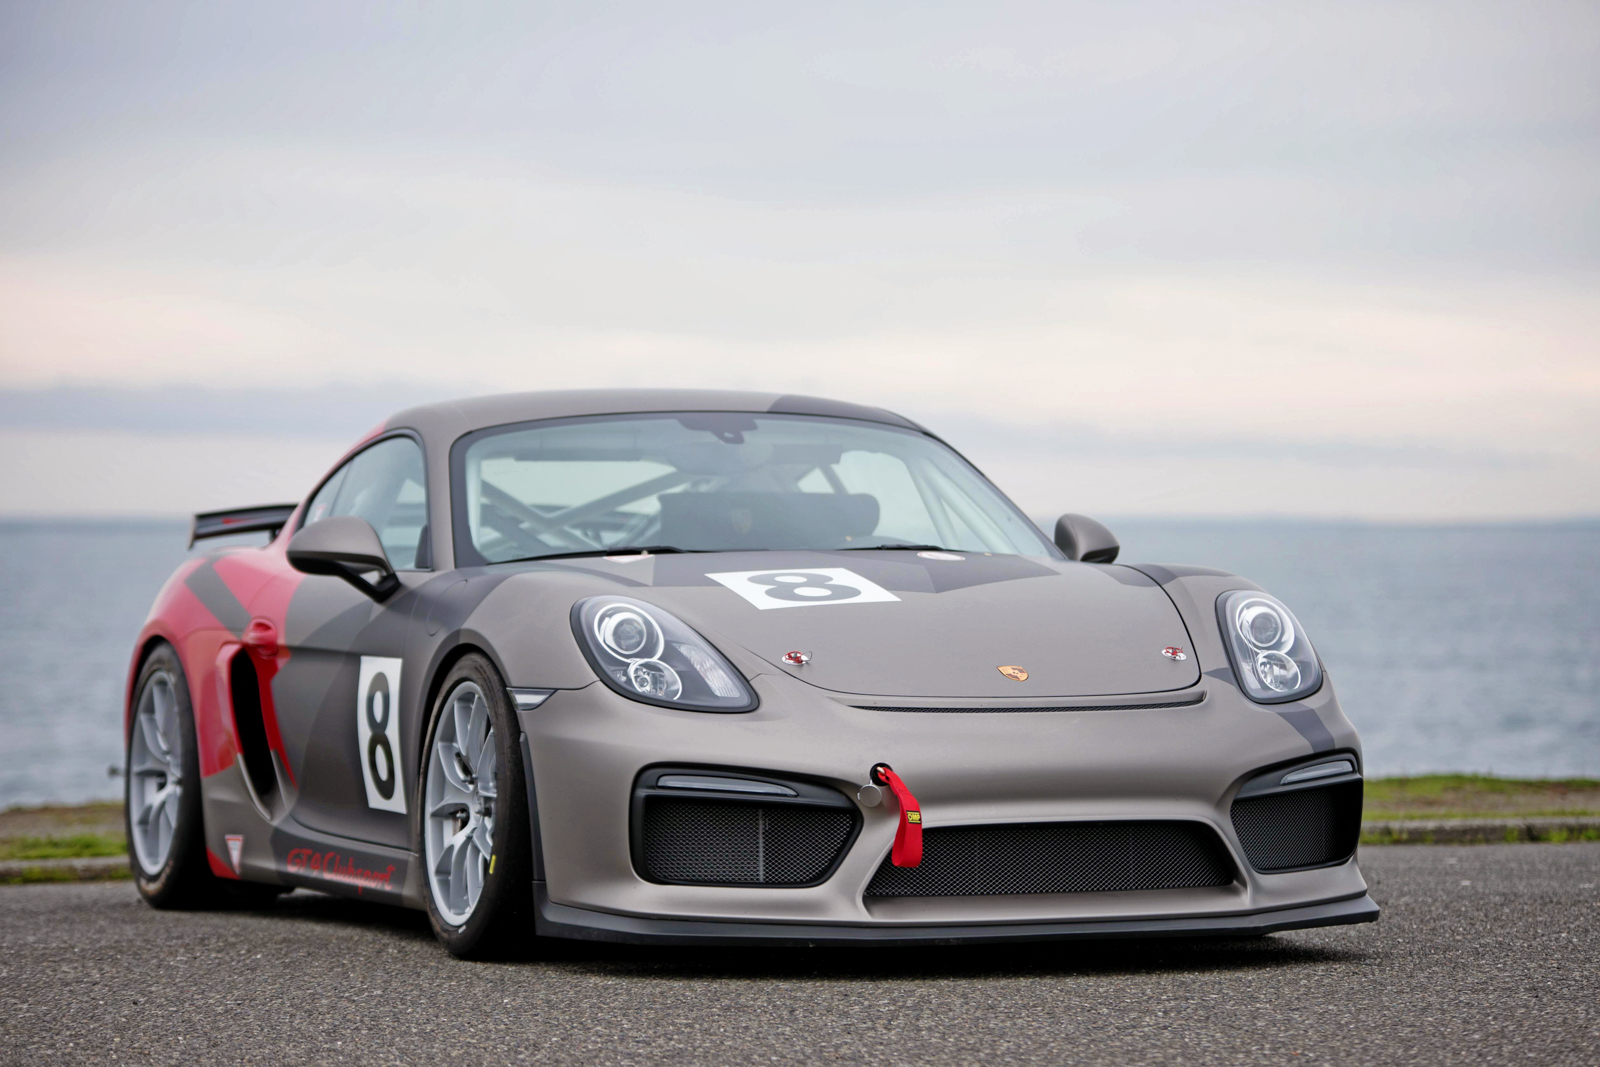 2016 porsche cayman gt4 clubsport for sale silver arrow cars ltd. Black Bedroom Furniture Sets. Home Design Ideas